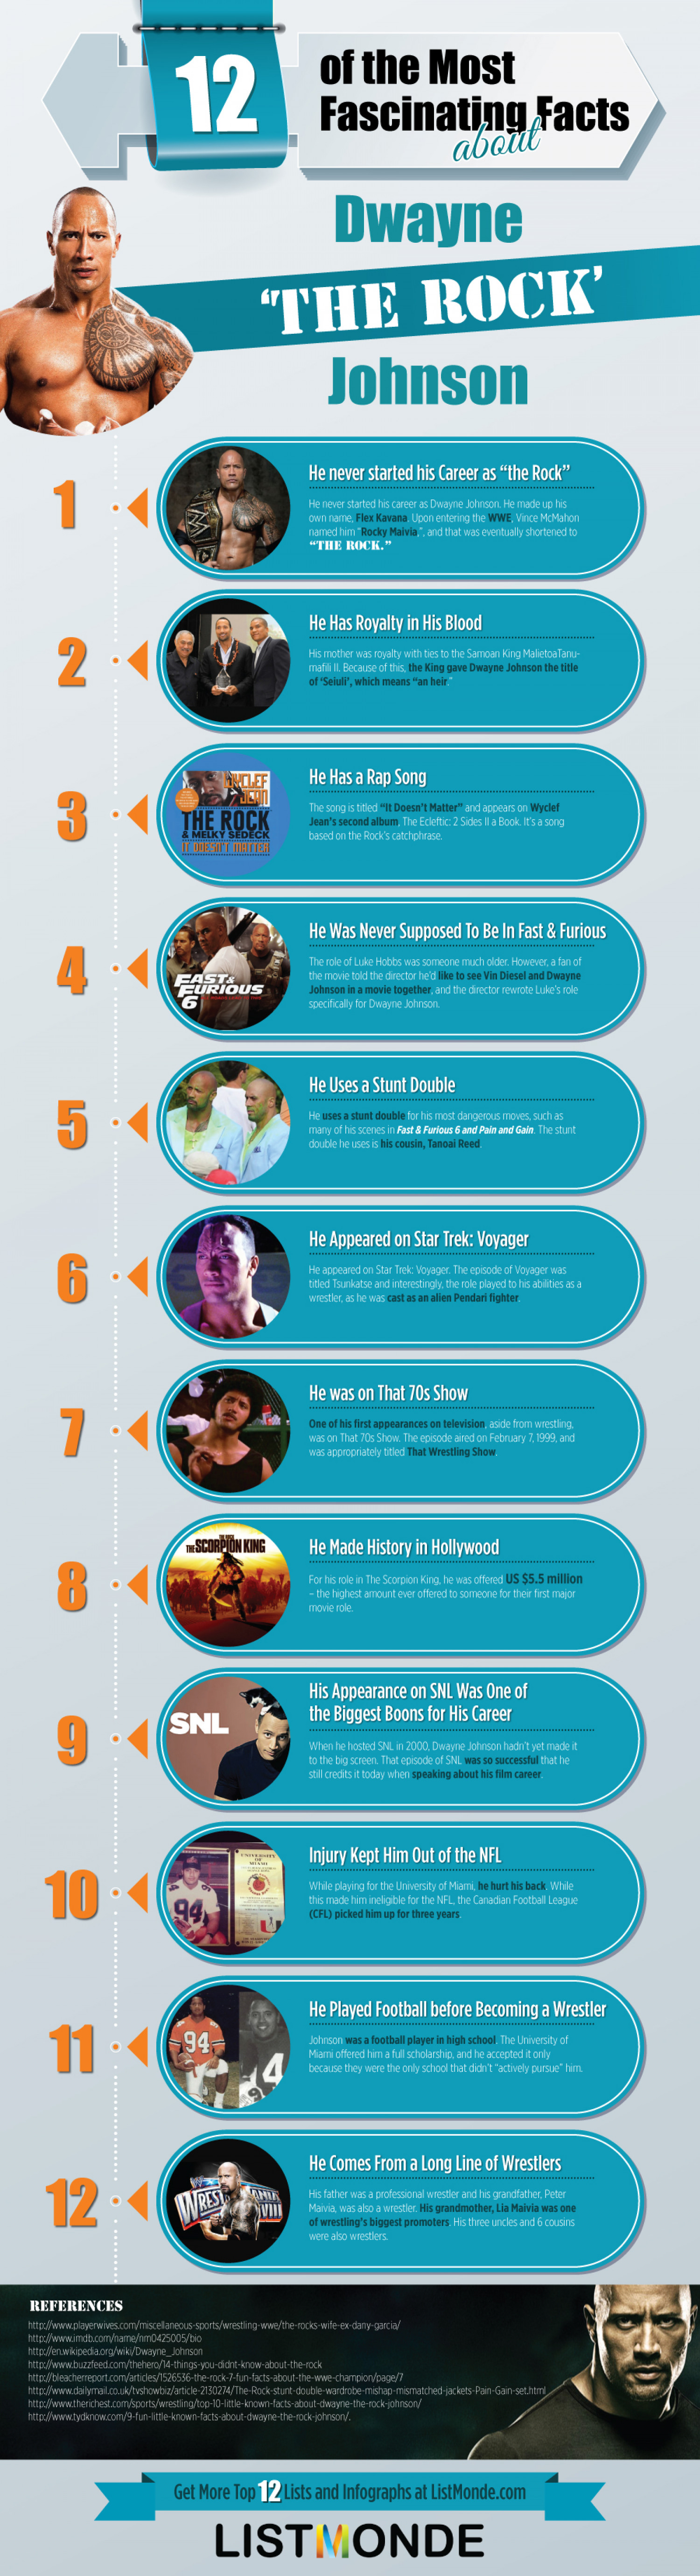 12 of the Most Fascinating Facts about Dwayne 'the Rock' Johnson Infographic